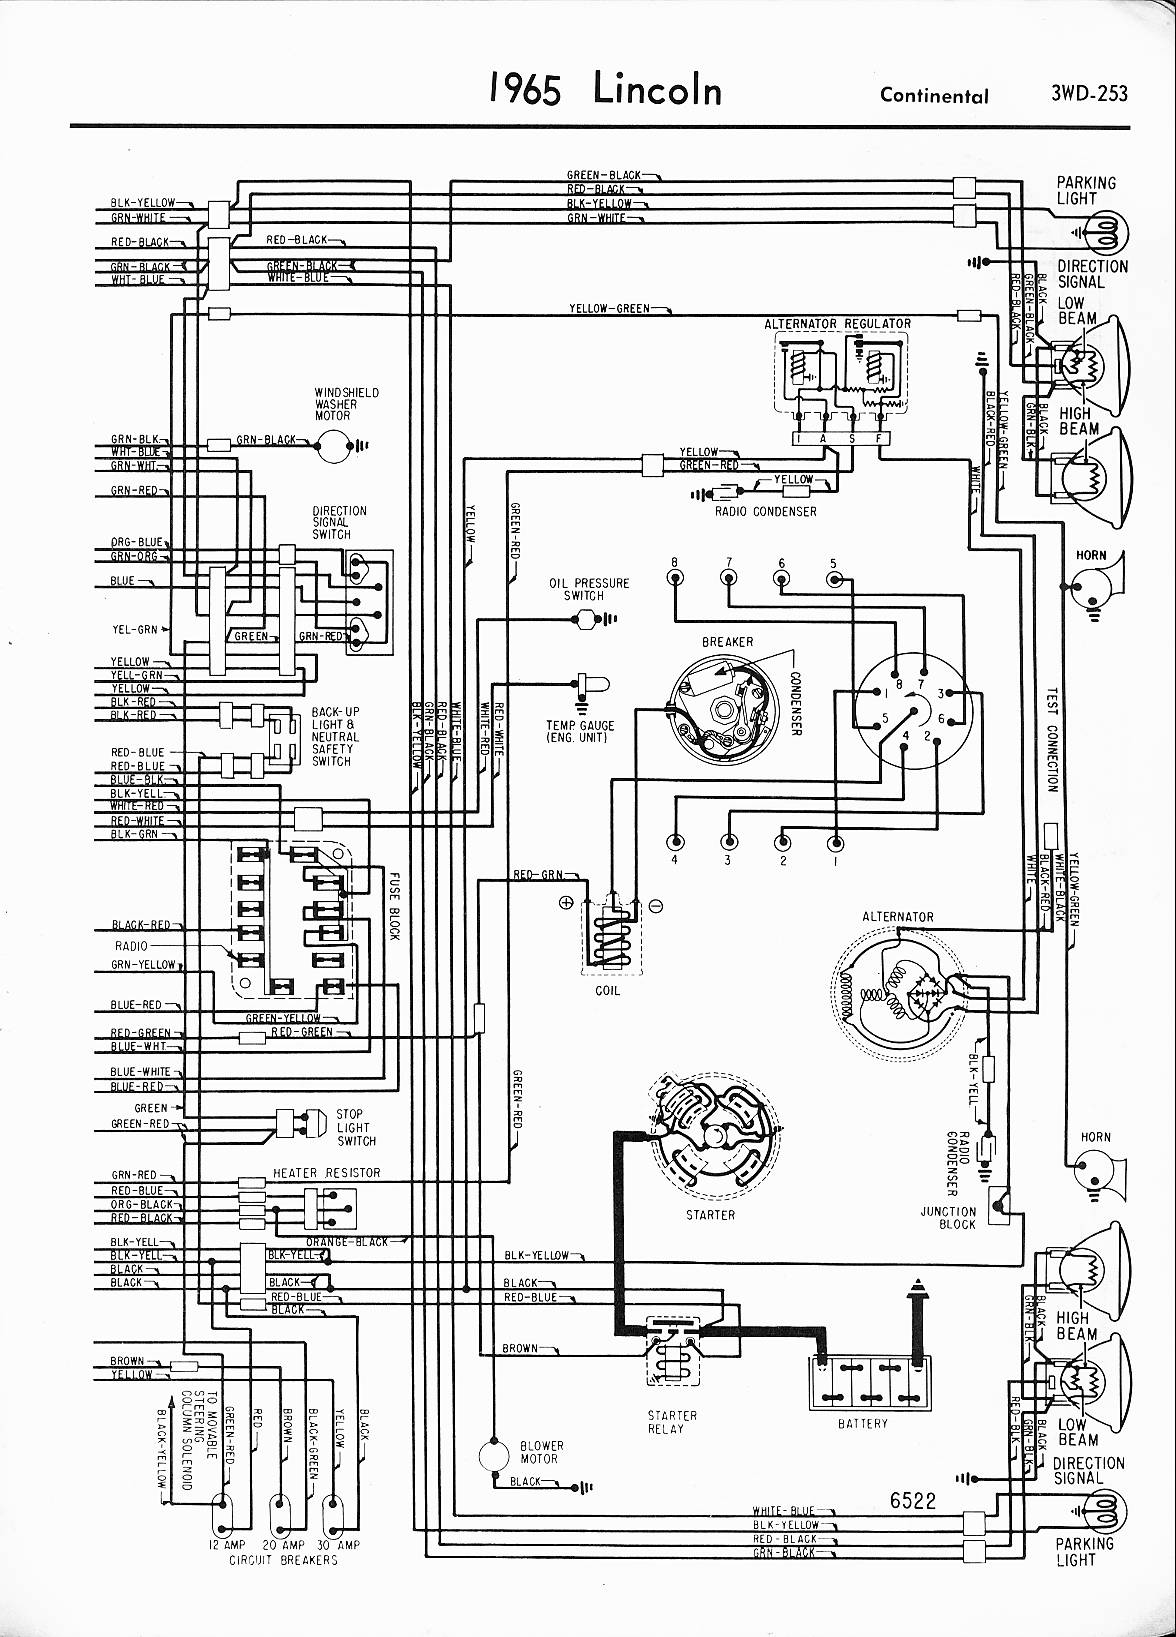 1965 lincoln wiring diagram wire center u2022 rh grooveguard co